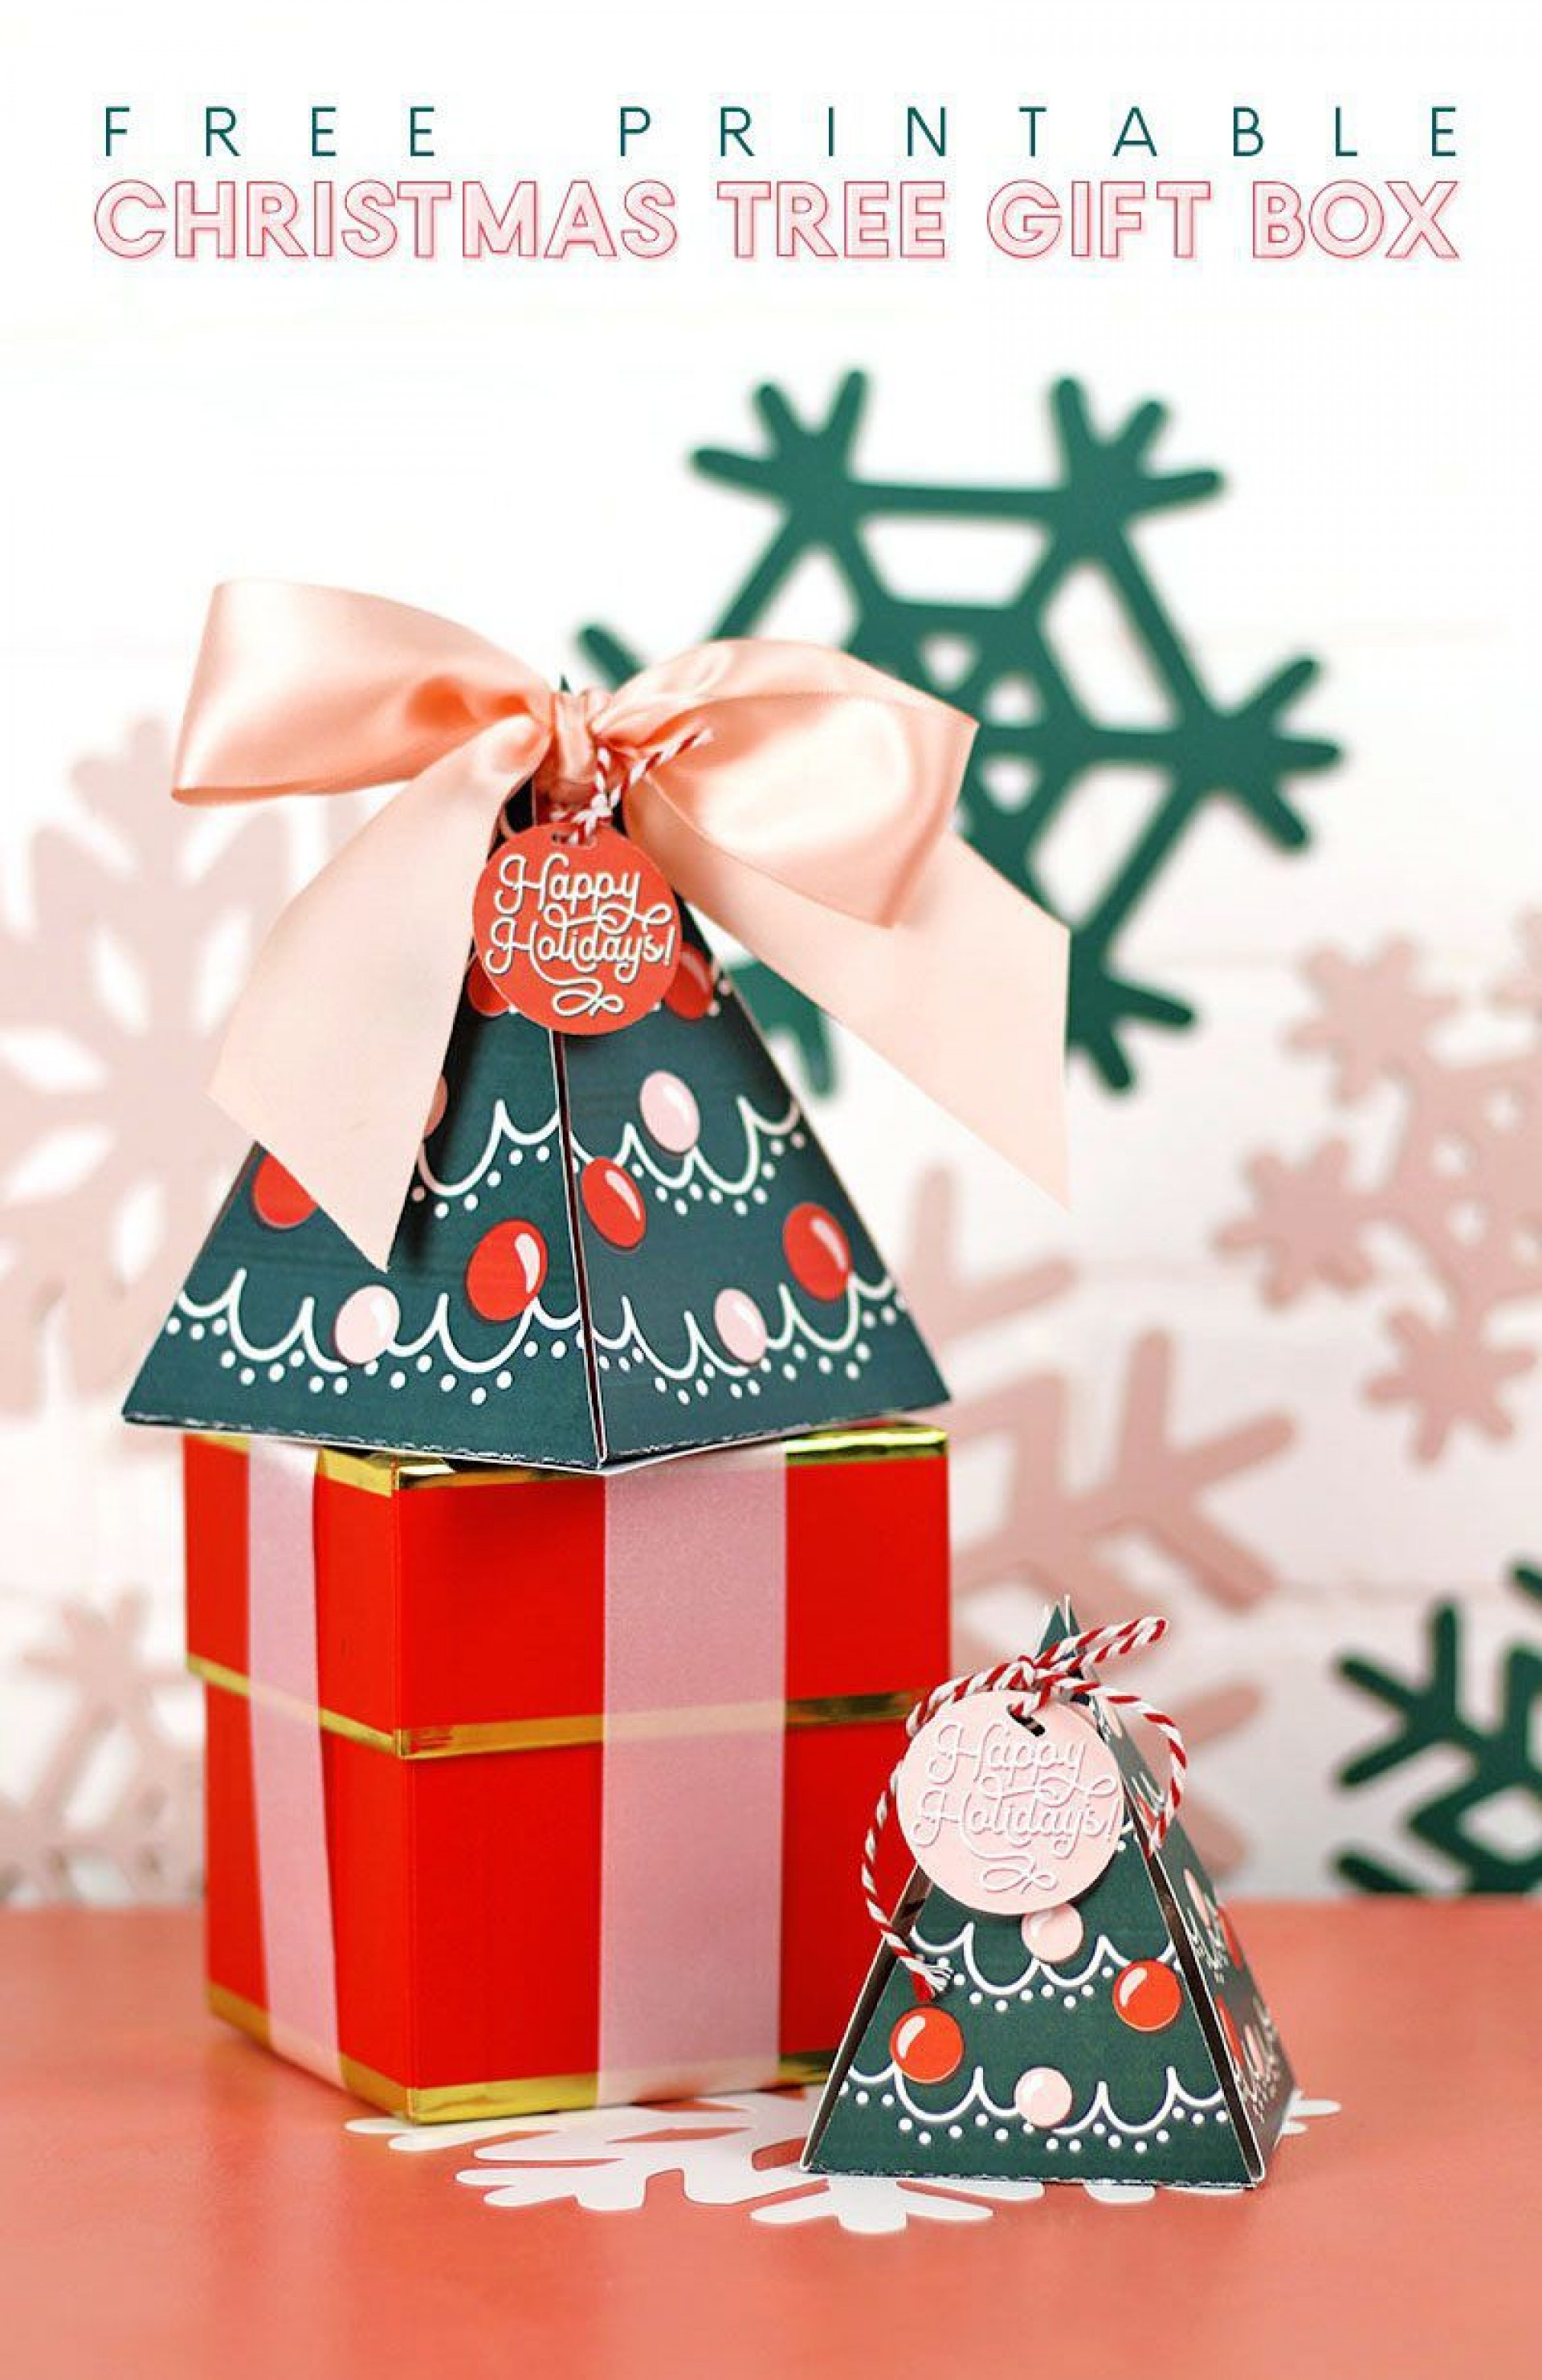 006 Staggering Christma Gift Box Template Free Printable Concept  Tree1920